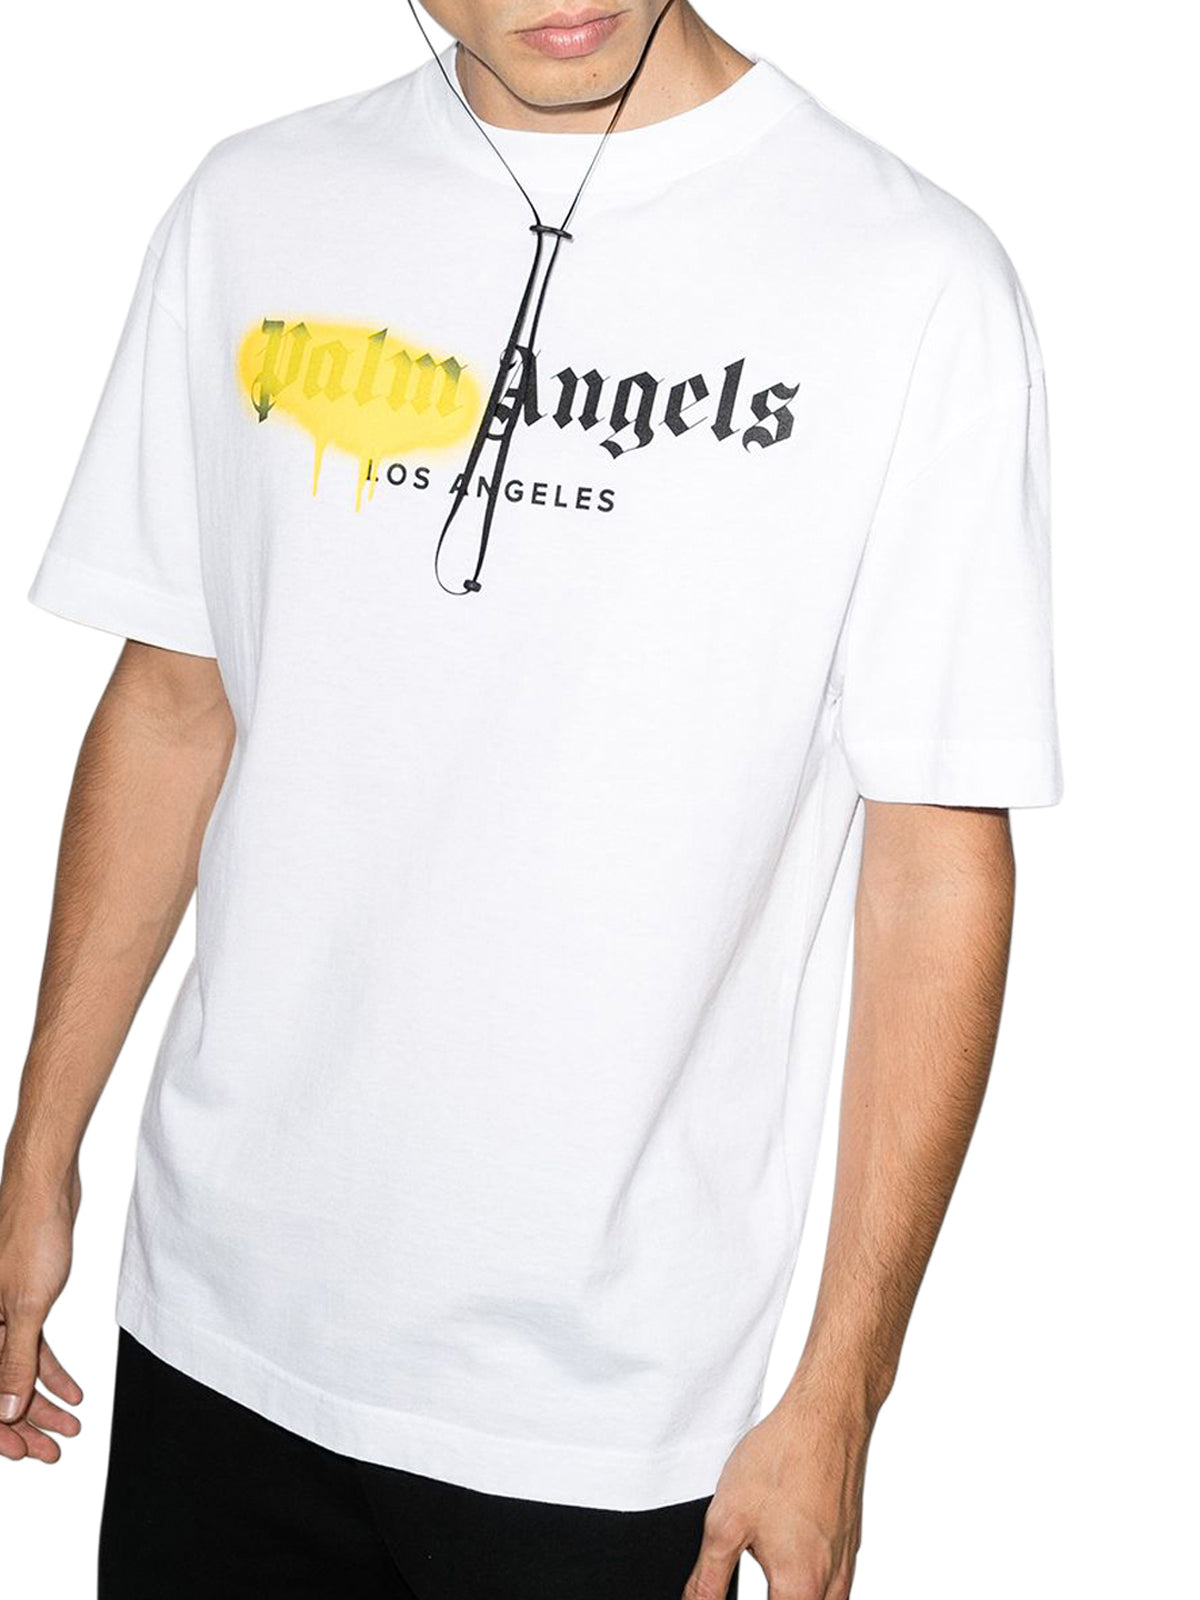 """LOS ANGELES"" SPRAYED LOGO S/S T-SHIRT"